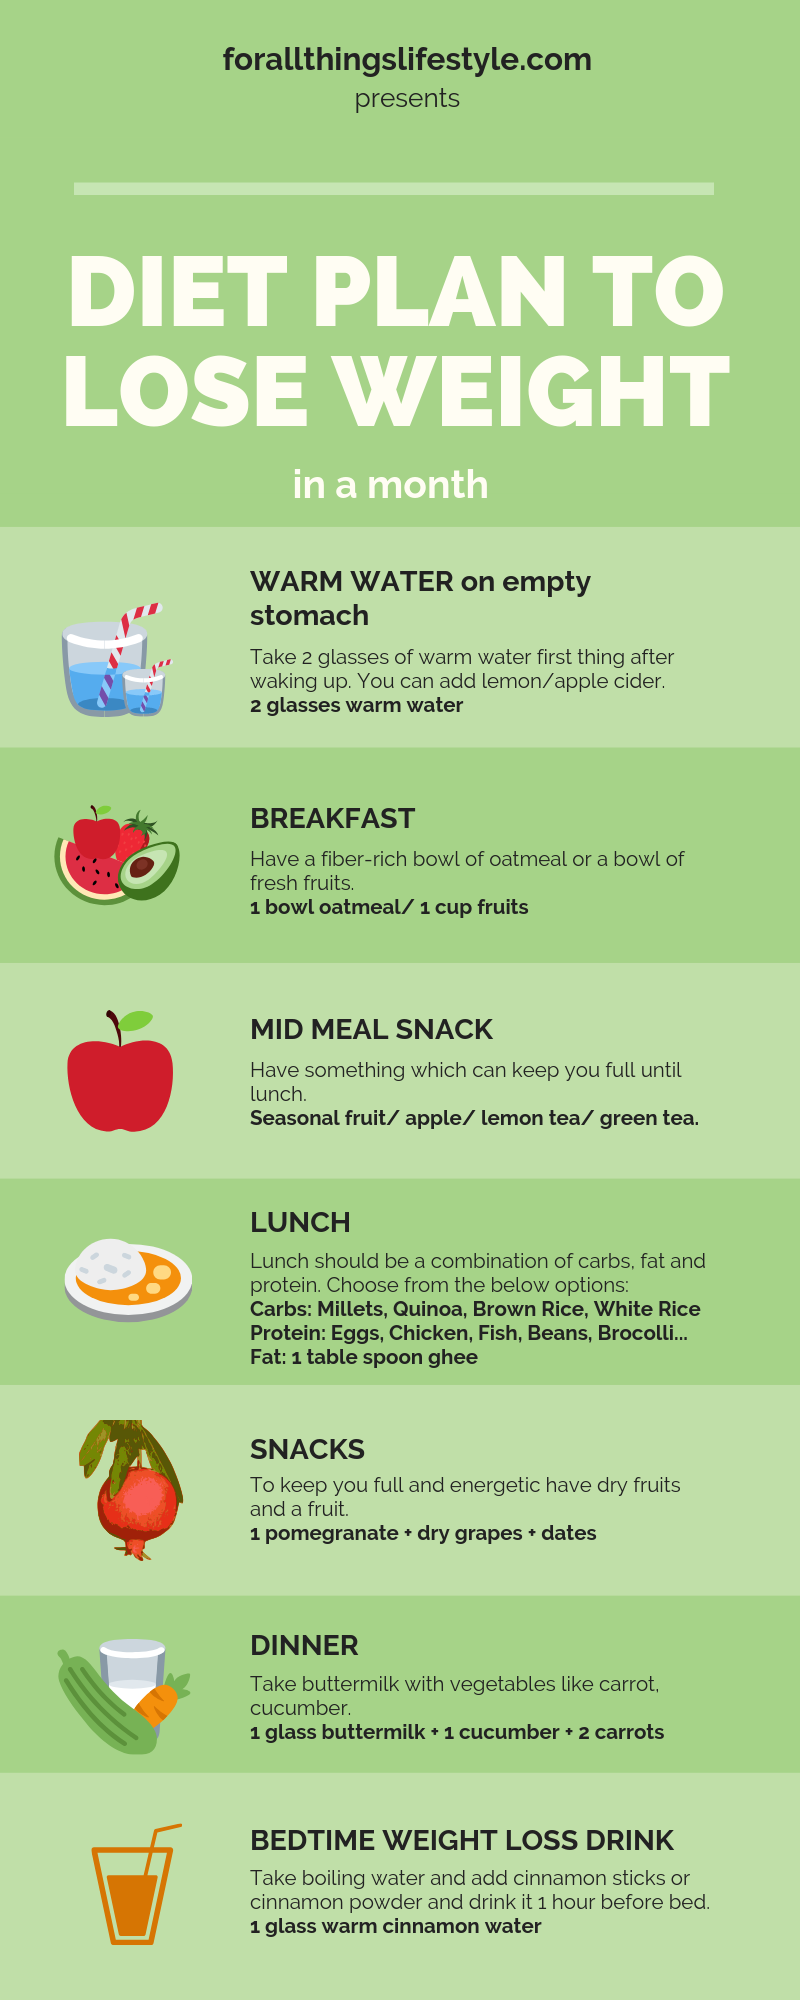 monthly weight loss diet protein greens add water